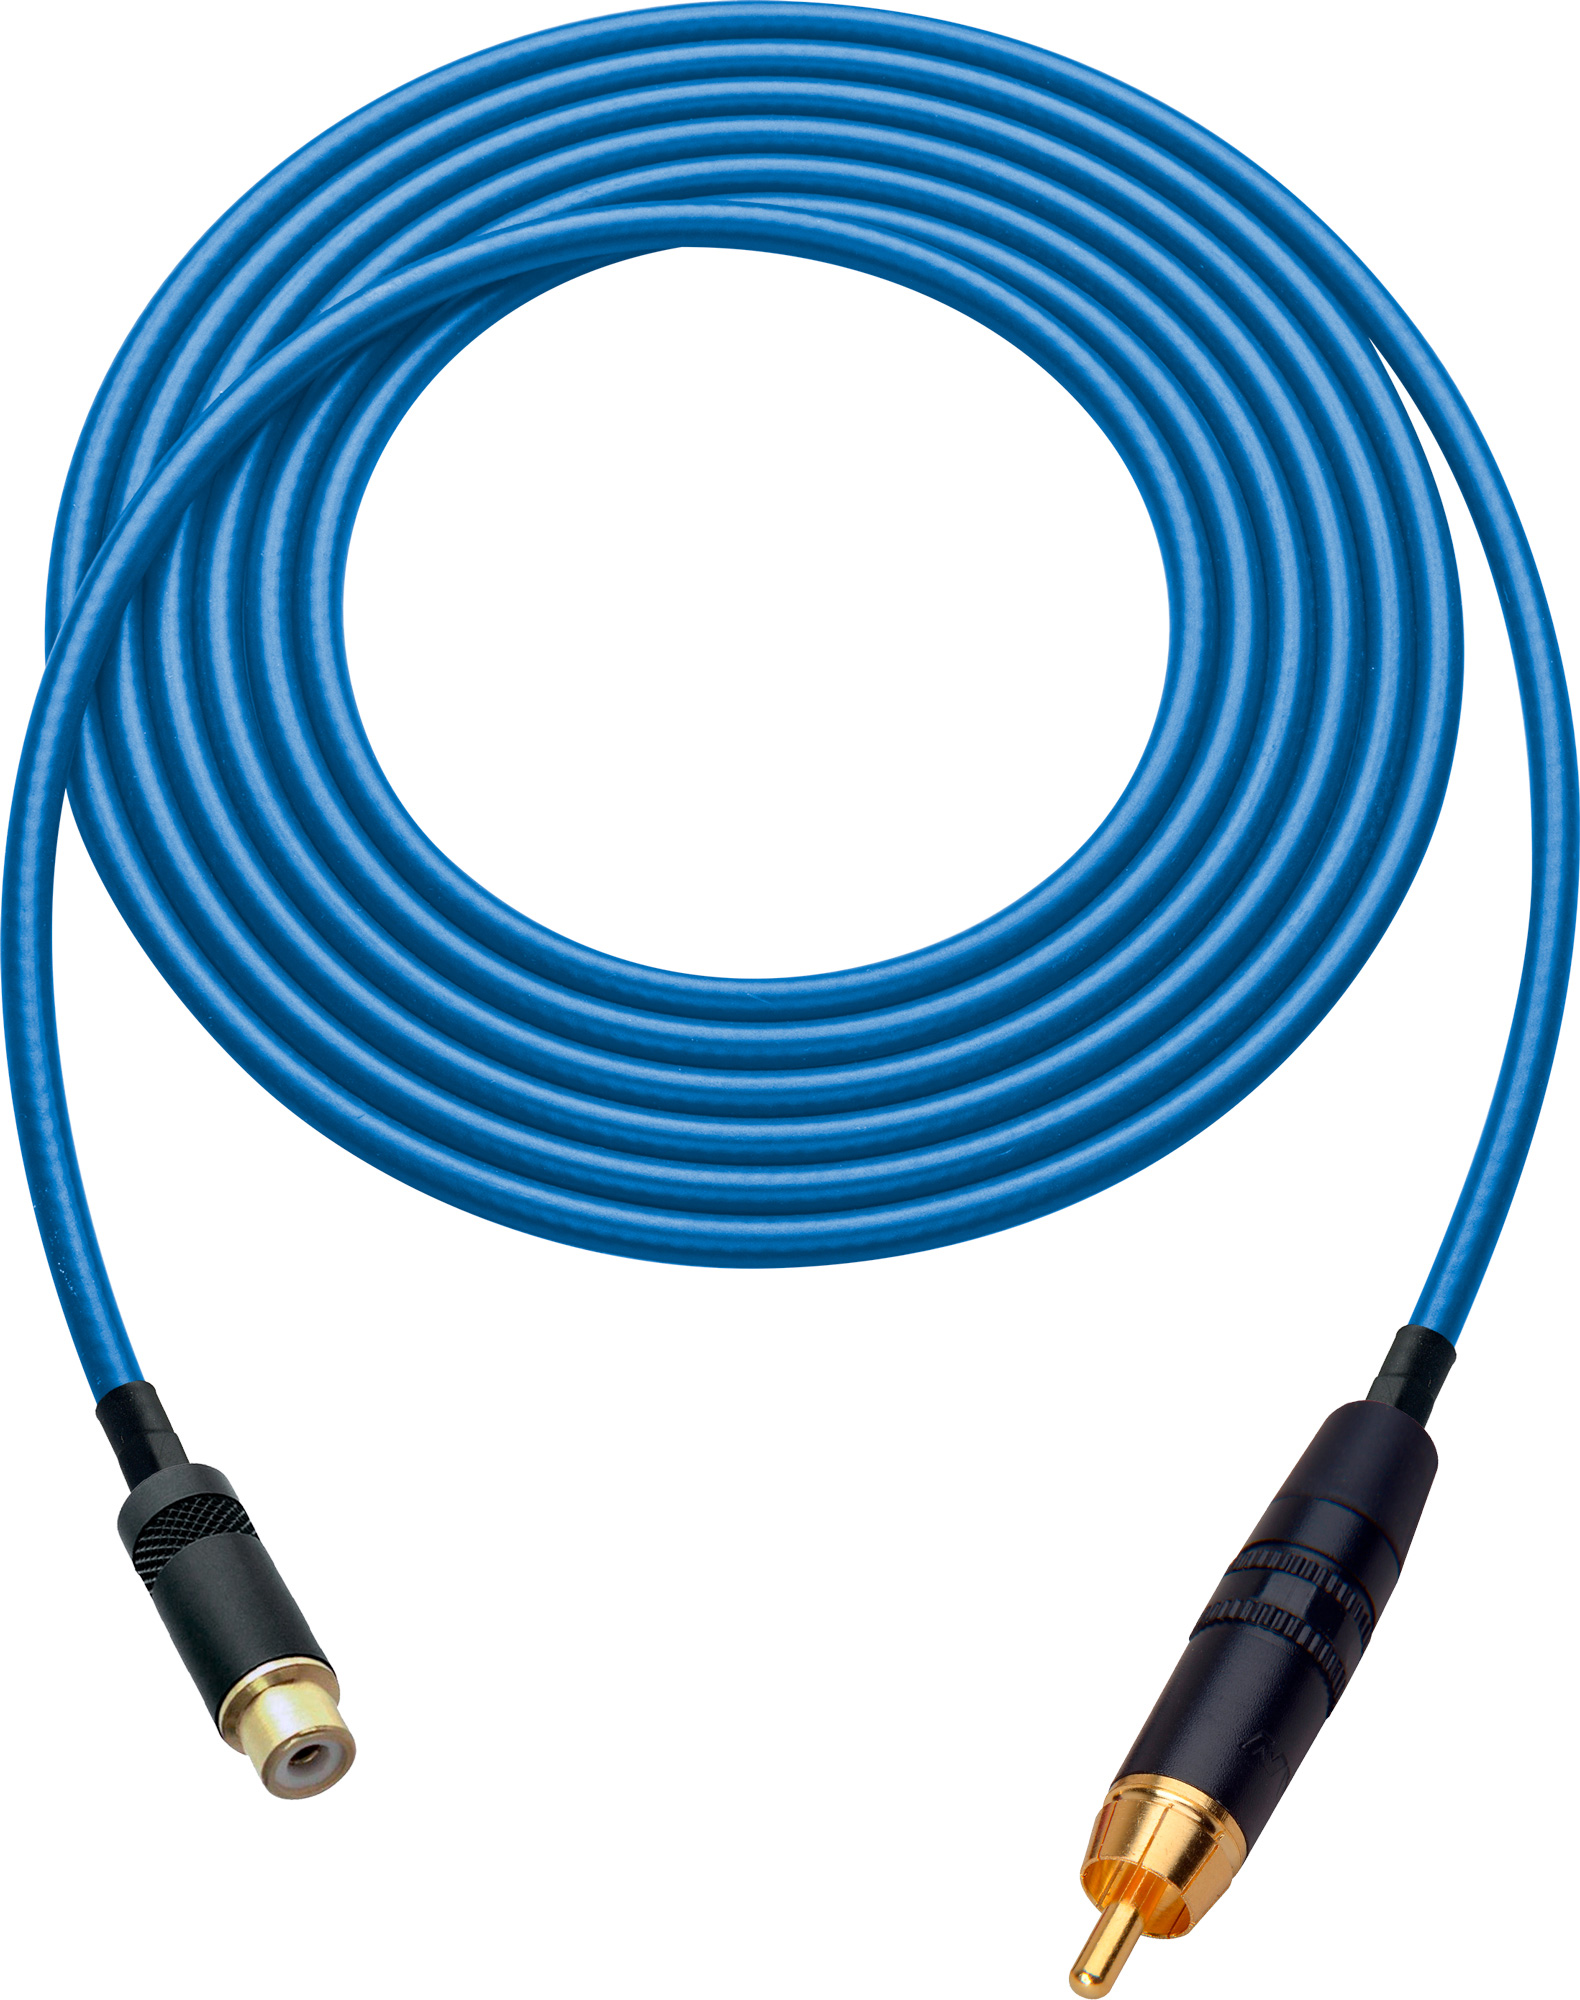 Laird HDAV-EXT-15-BE Belden 1505A RCA M to F Extension Cable For Audio or HD Video - 15 Foot Blue